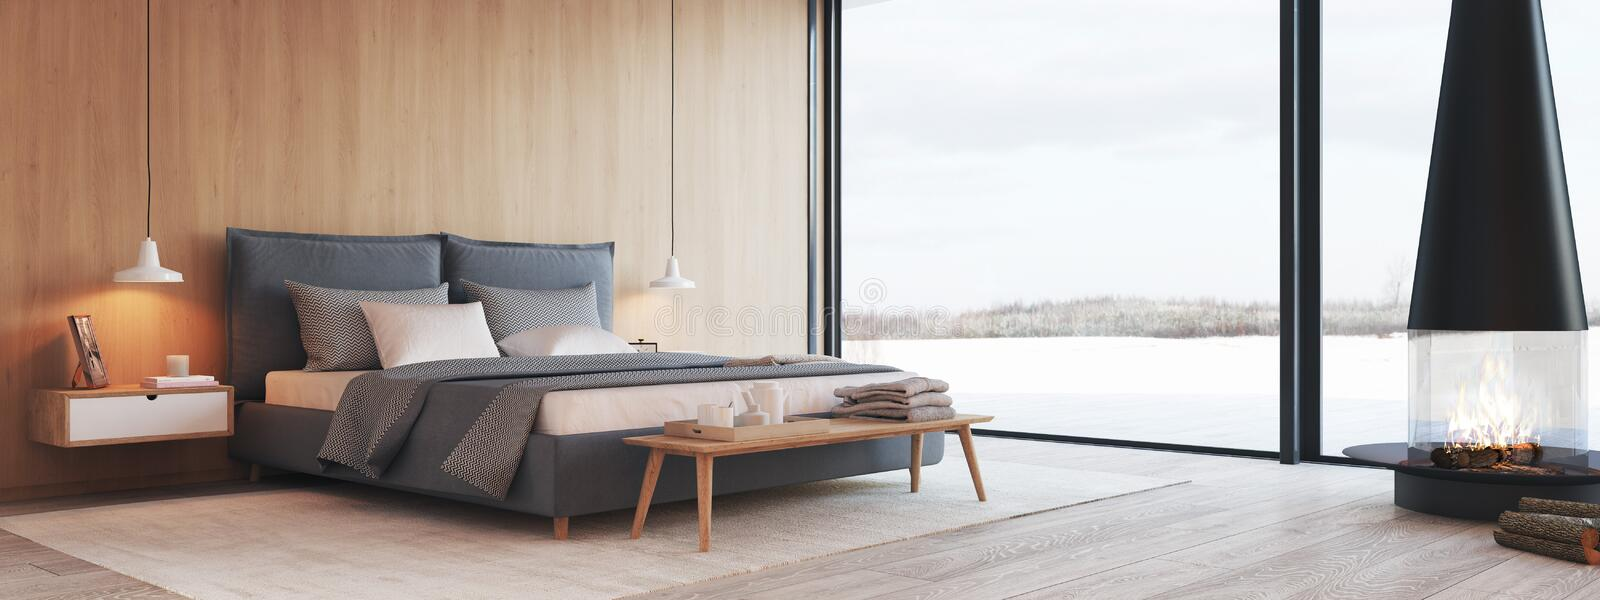 Modern bedroom in a apartment with view. 3d rendering royalty free illustration